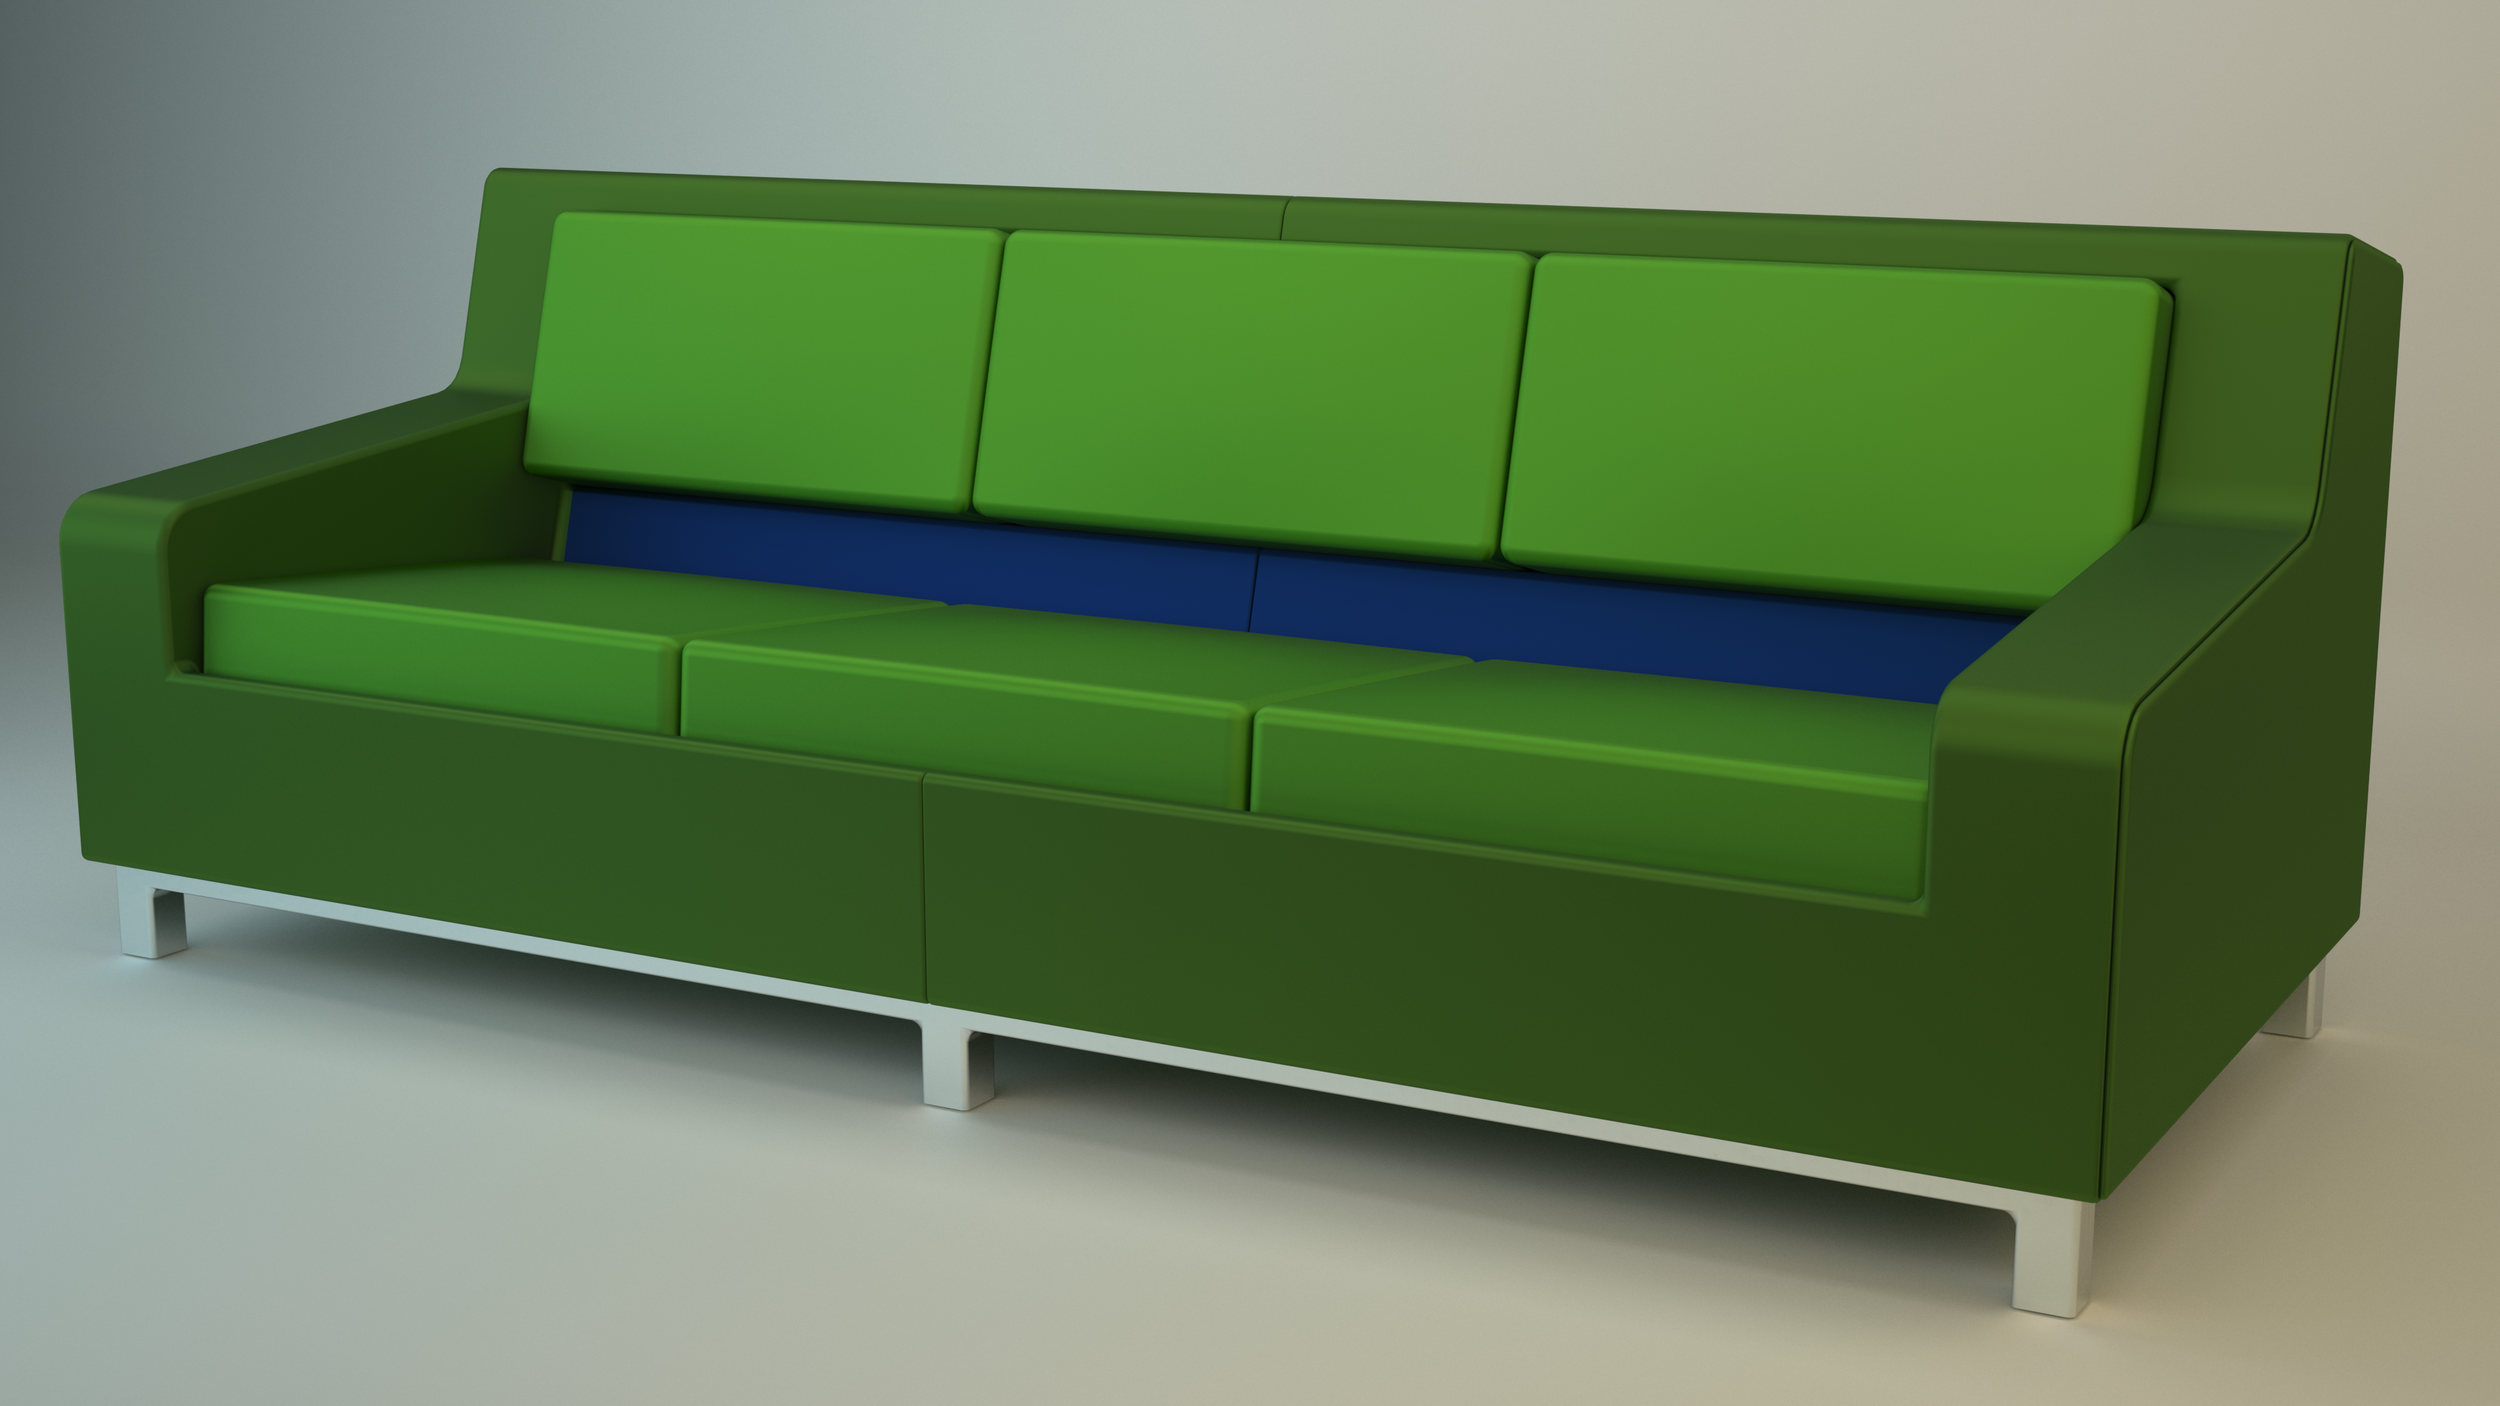 sofa_green-ultramarine 01.png